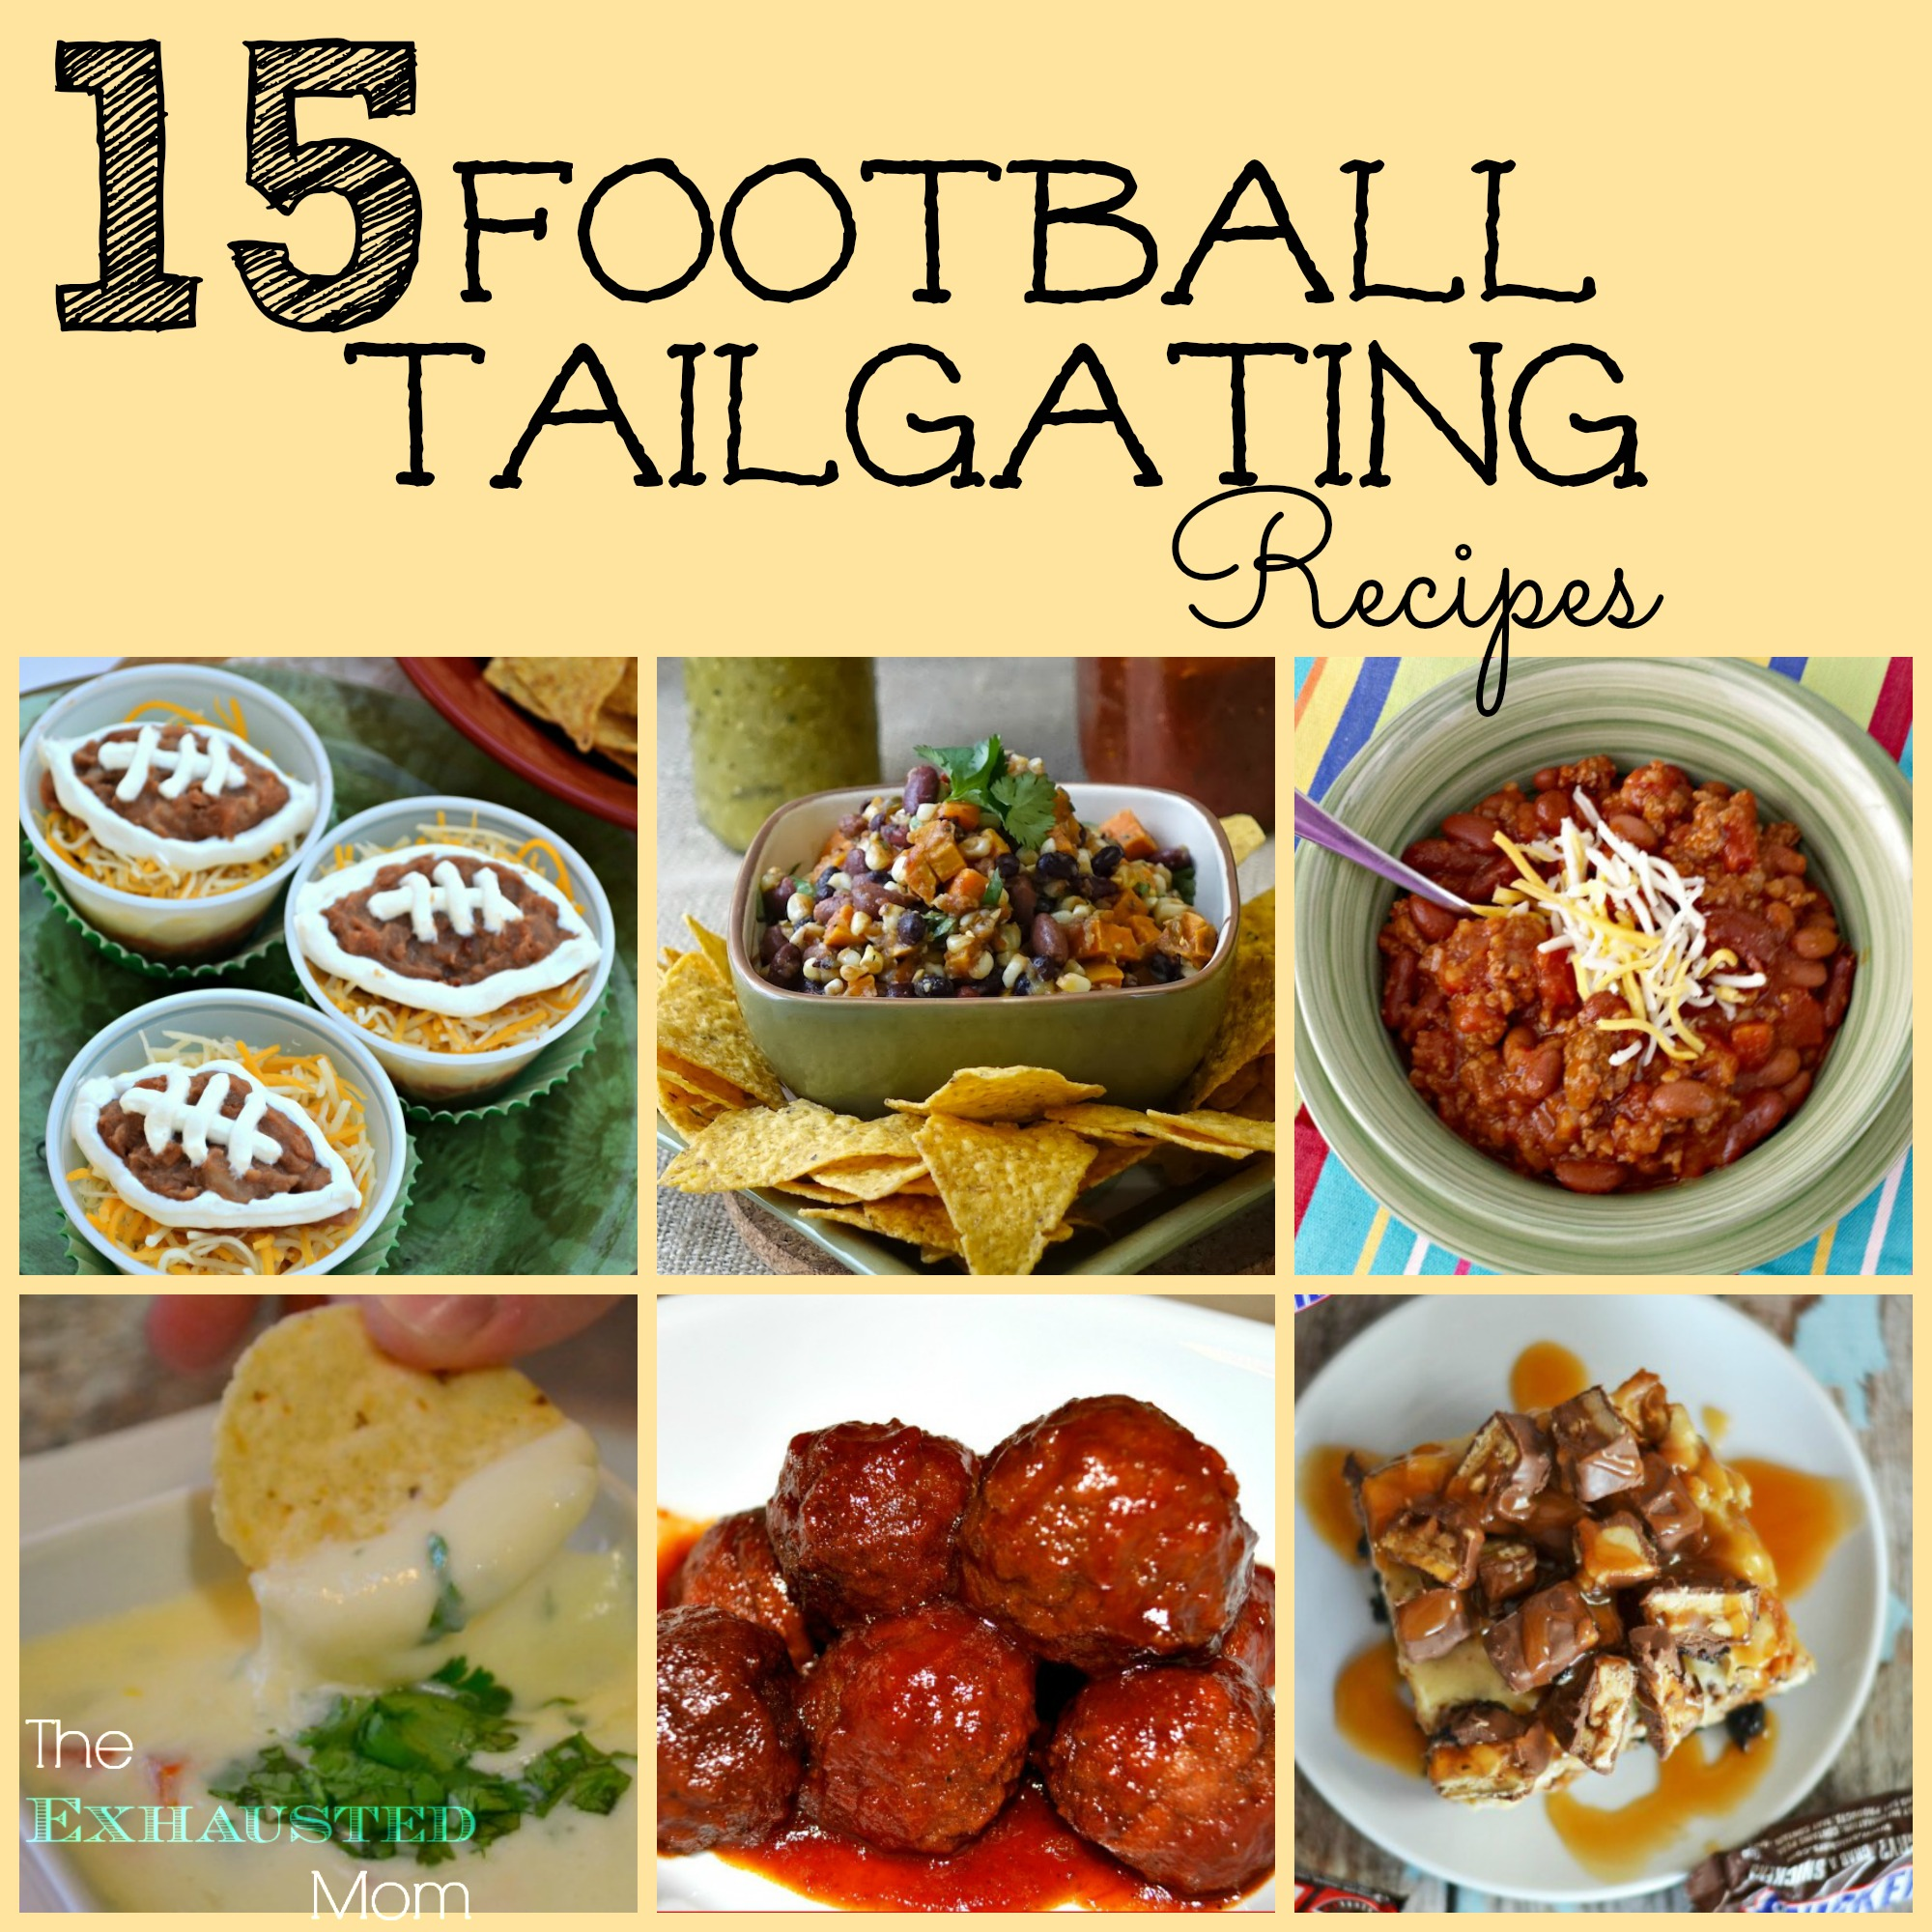 Tailgating Recipes Roundup 2